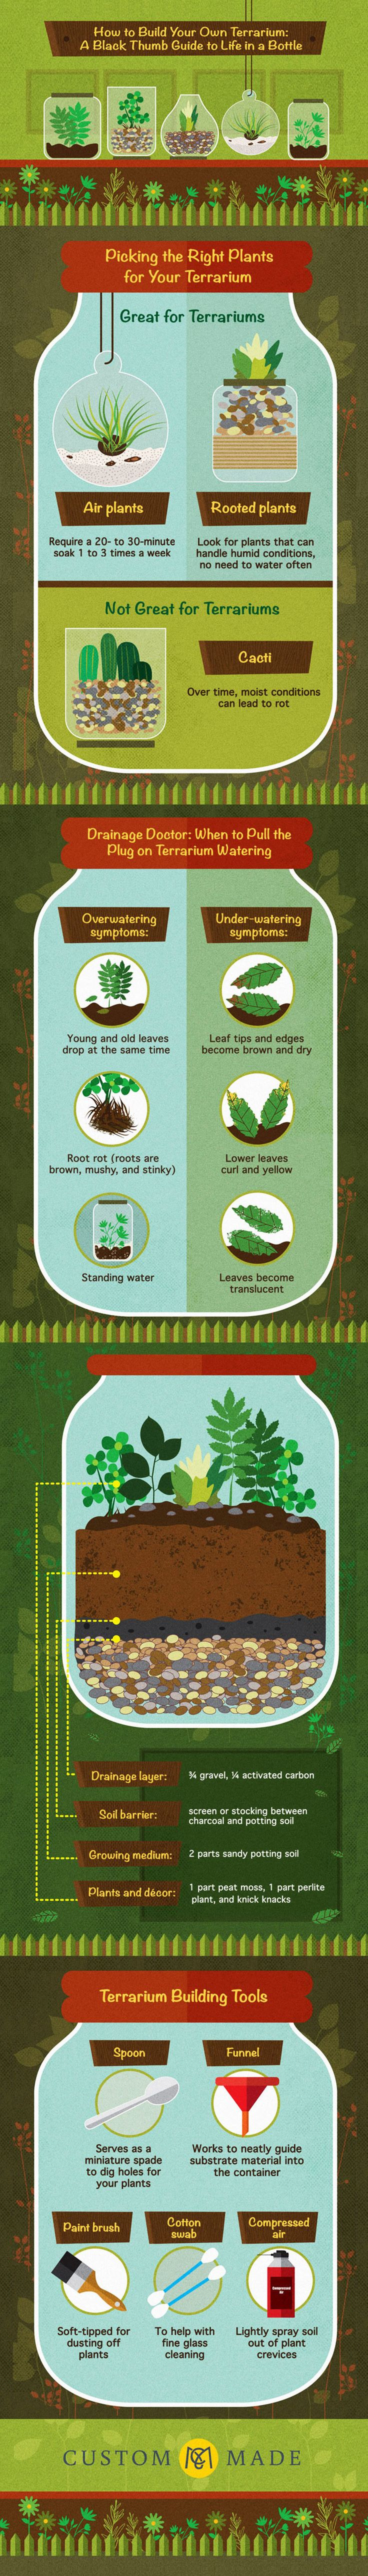 How to Make a Plant Terrarium - Gardening Infographic. Topic: planting, plants, succulents, greenhouse, glass jar, bowl, bonsai.